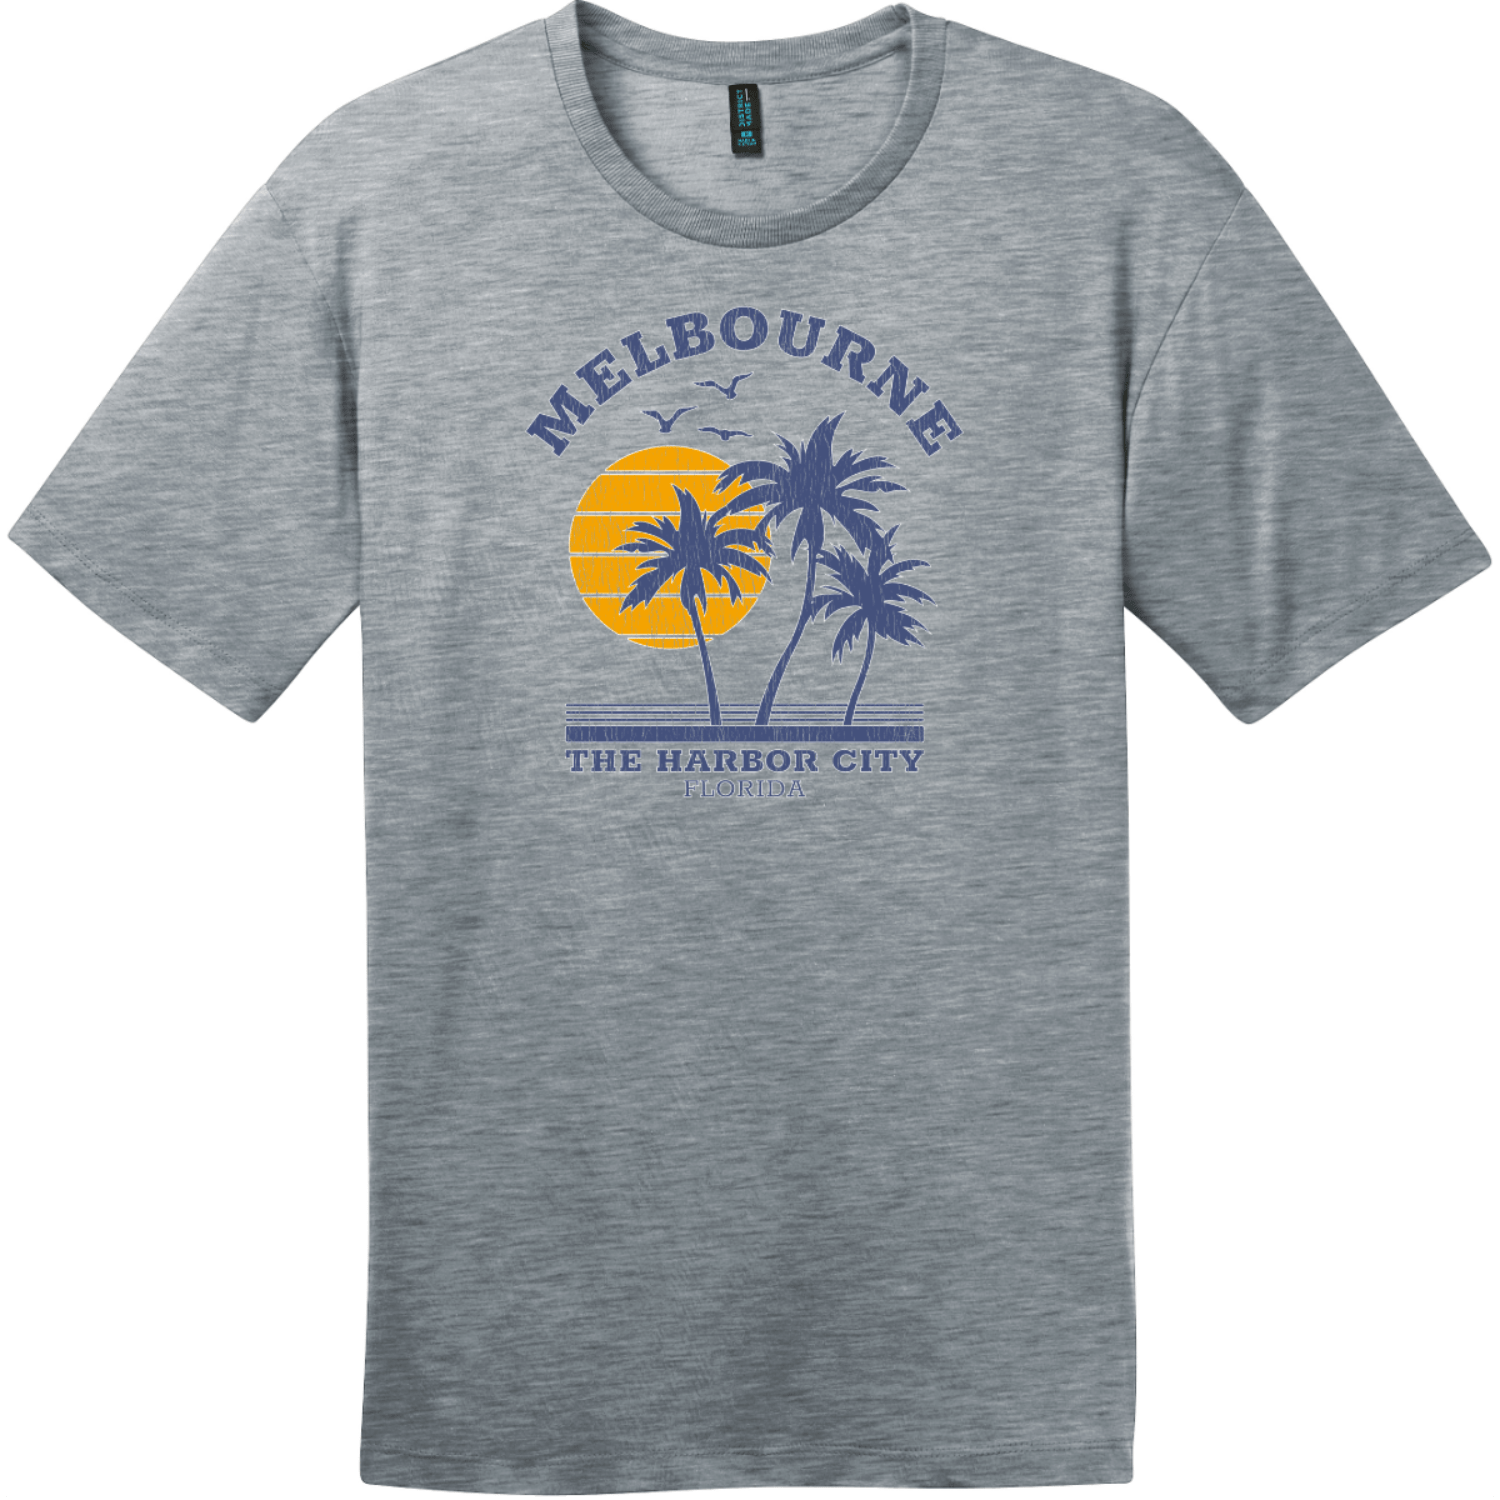 Melbourne Florida The Harbor City Vintage T-Shirt Heathered Steel District Perfect Weight Tee DT104